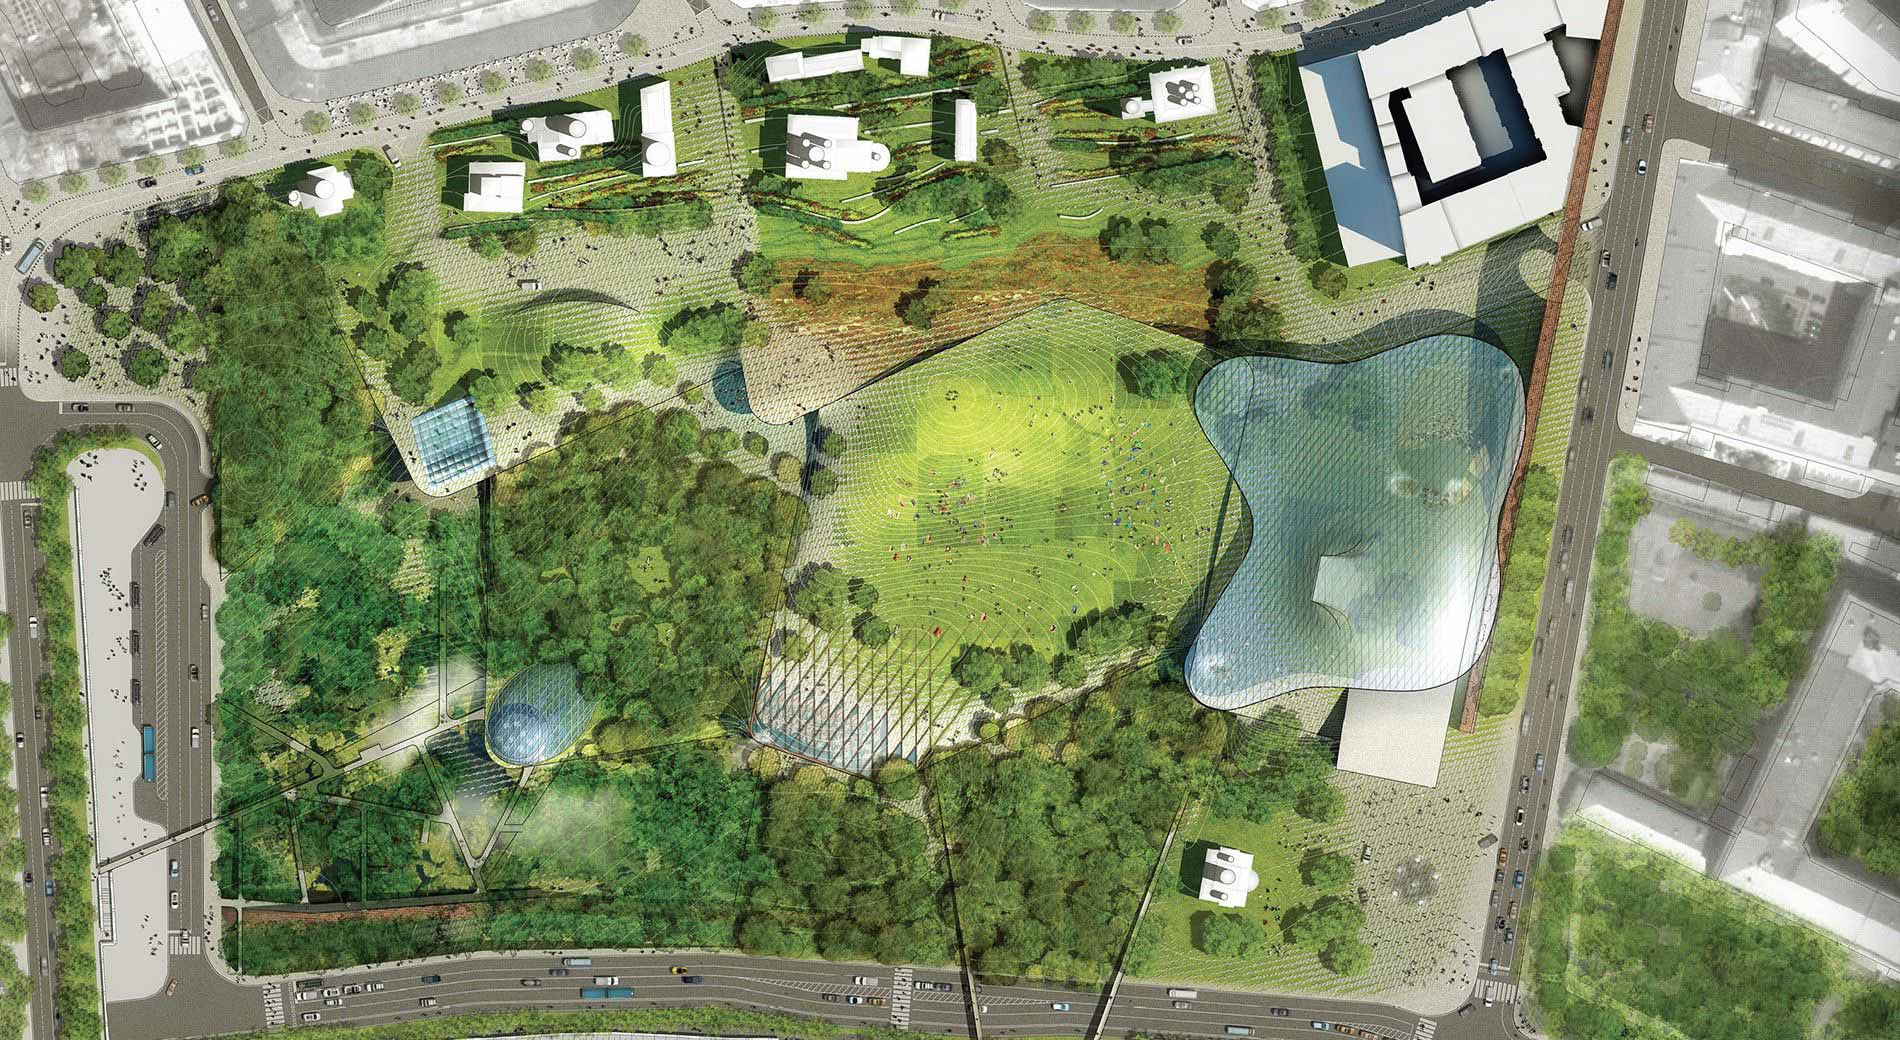 Zaryadye 1 place by diller scofidio renfro 01 landscape for Place landscape architecture